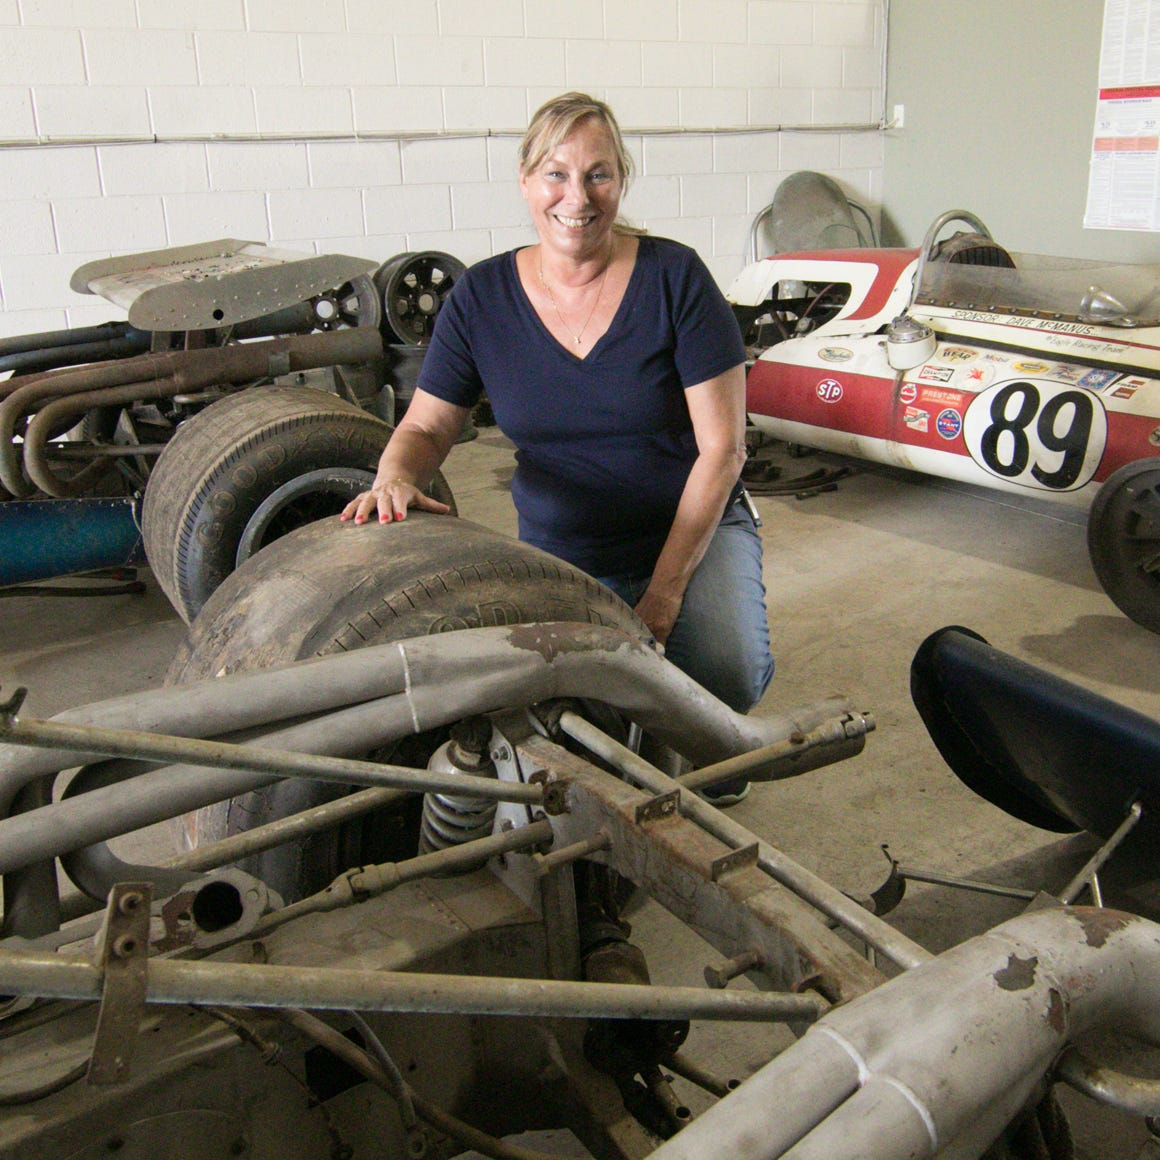 Famed race car driver Jack Conely's vintage cars, engines up for auction